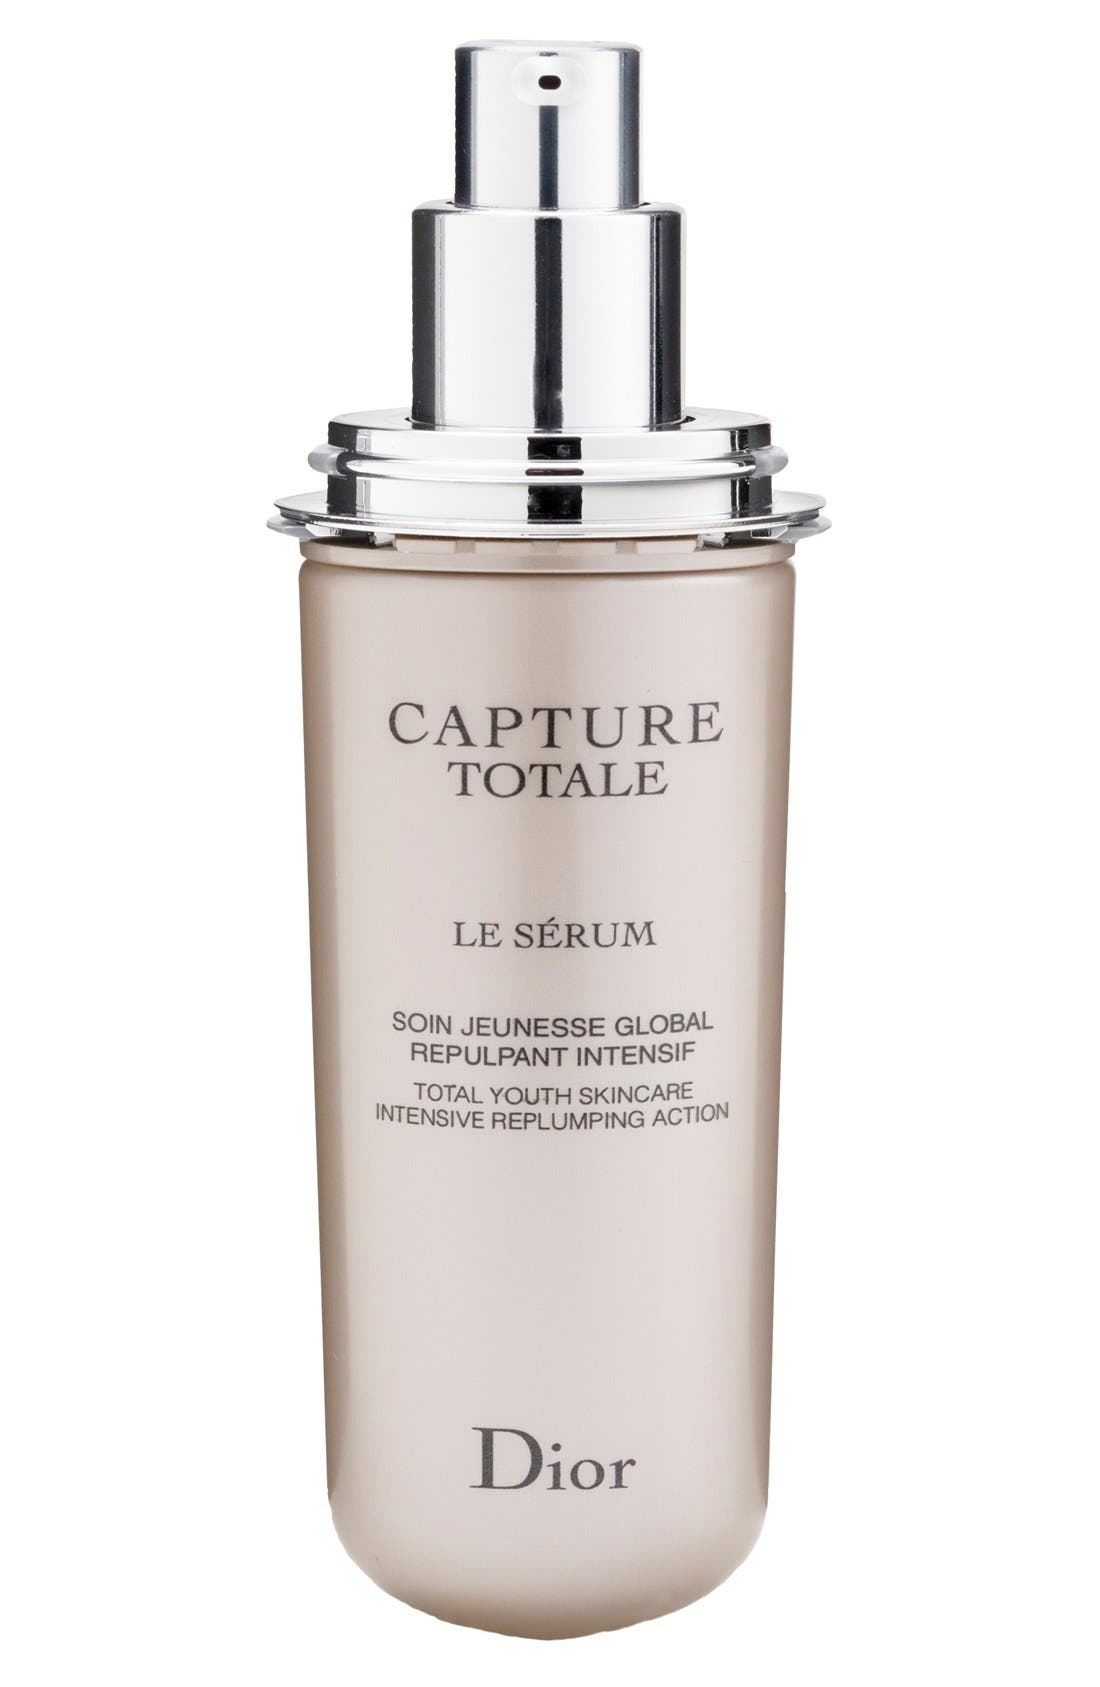 Dior 'Capture Totale' Le Serum Refill (1.7 oz.)